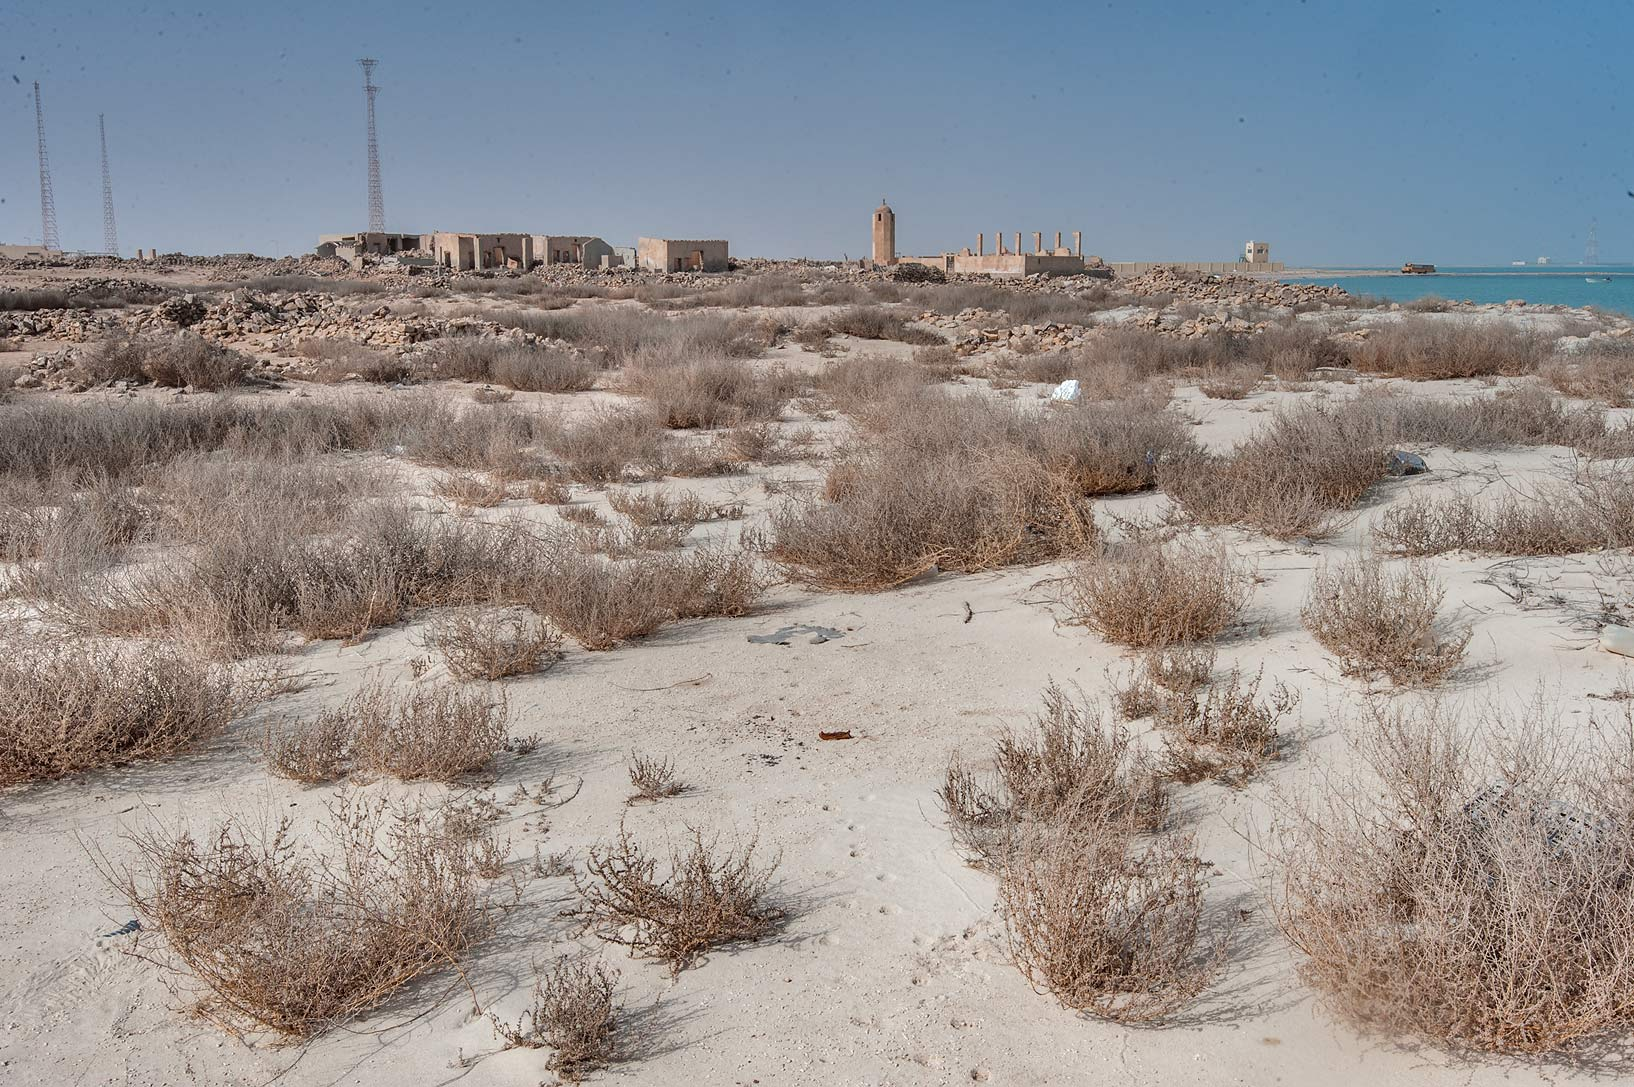 Old fishing village (ghost town) of Al Khuwair...from Lekhwair on northern coast. Qatar